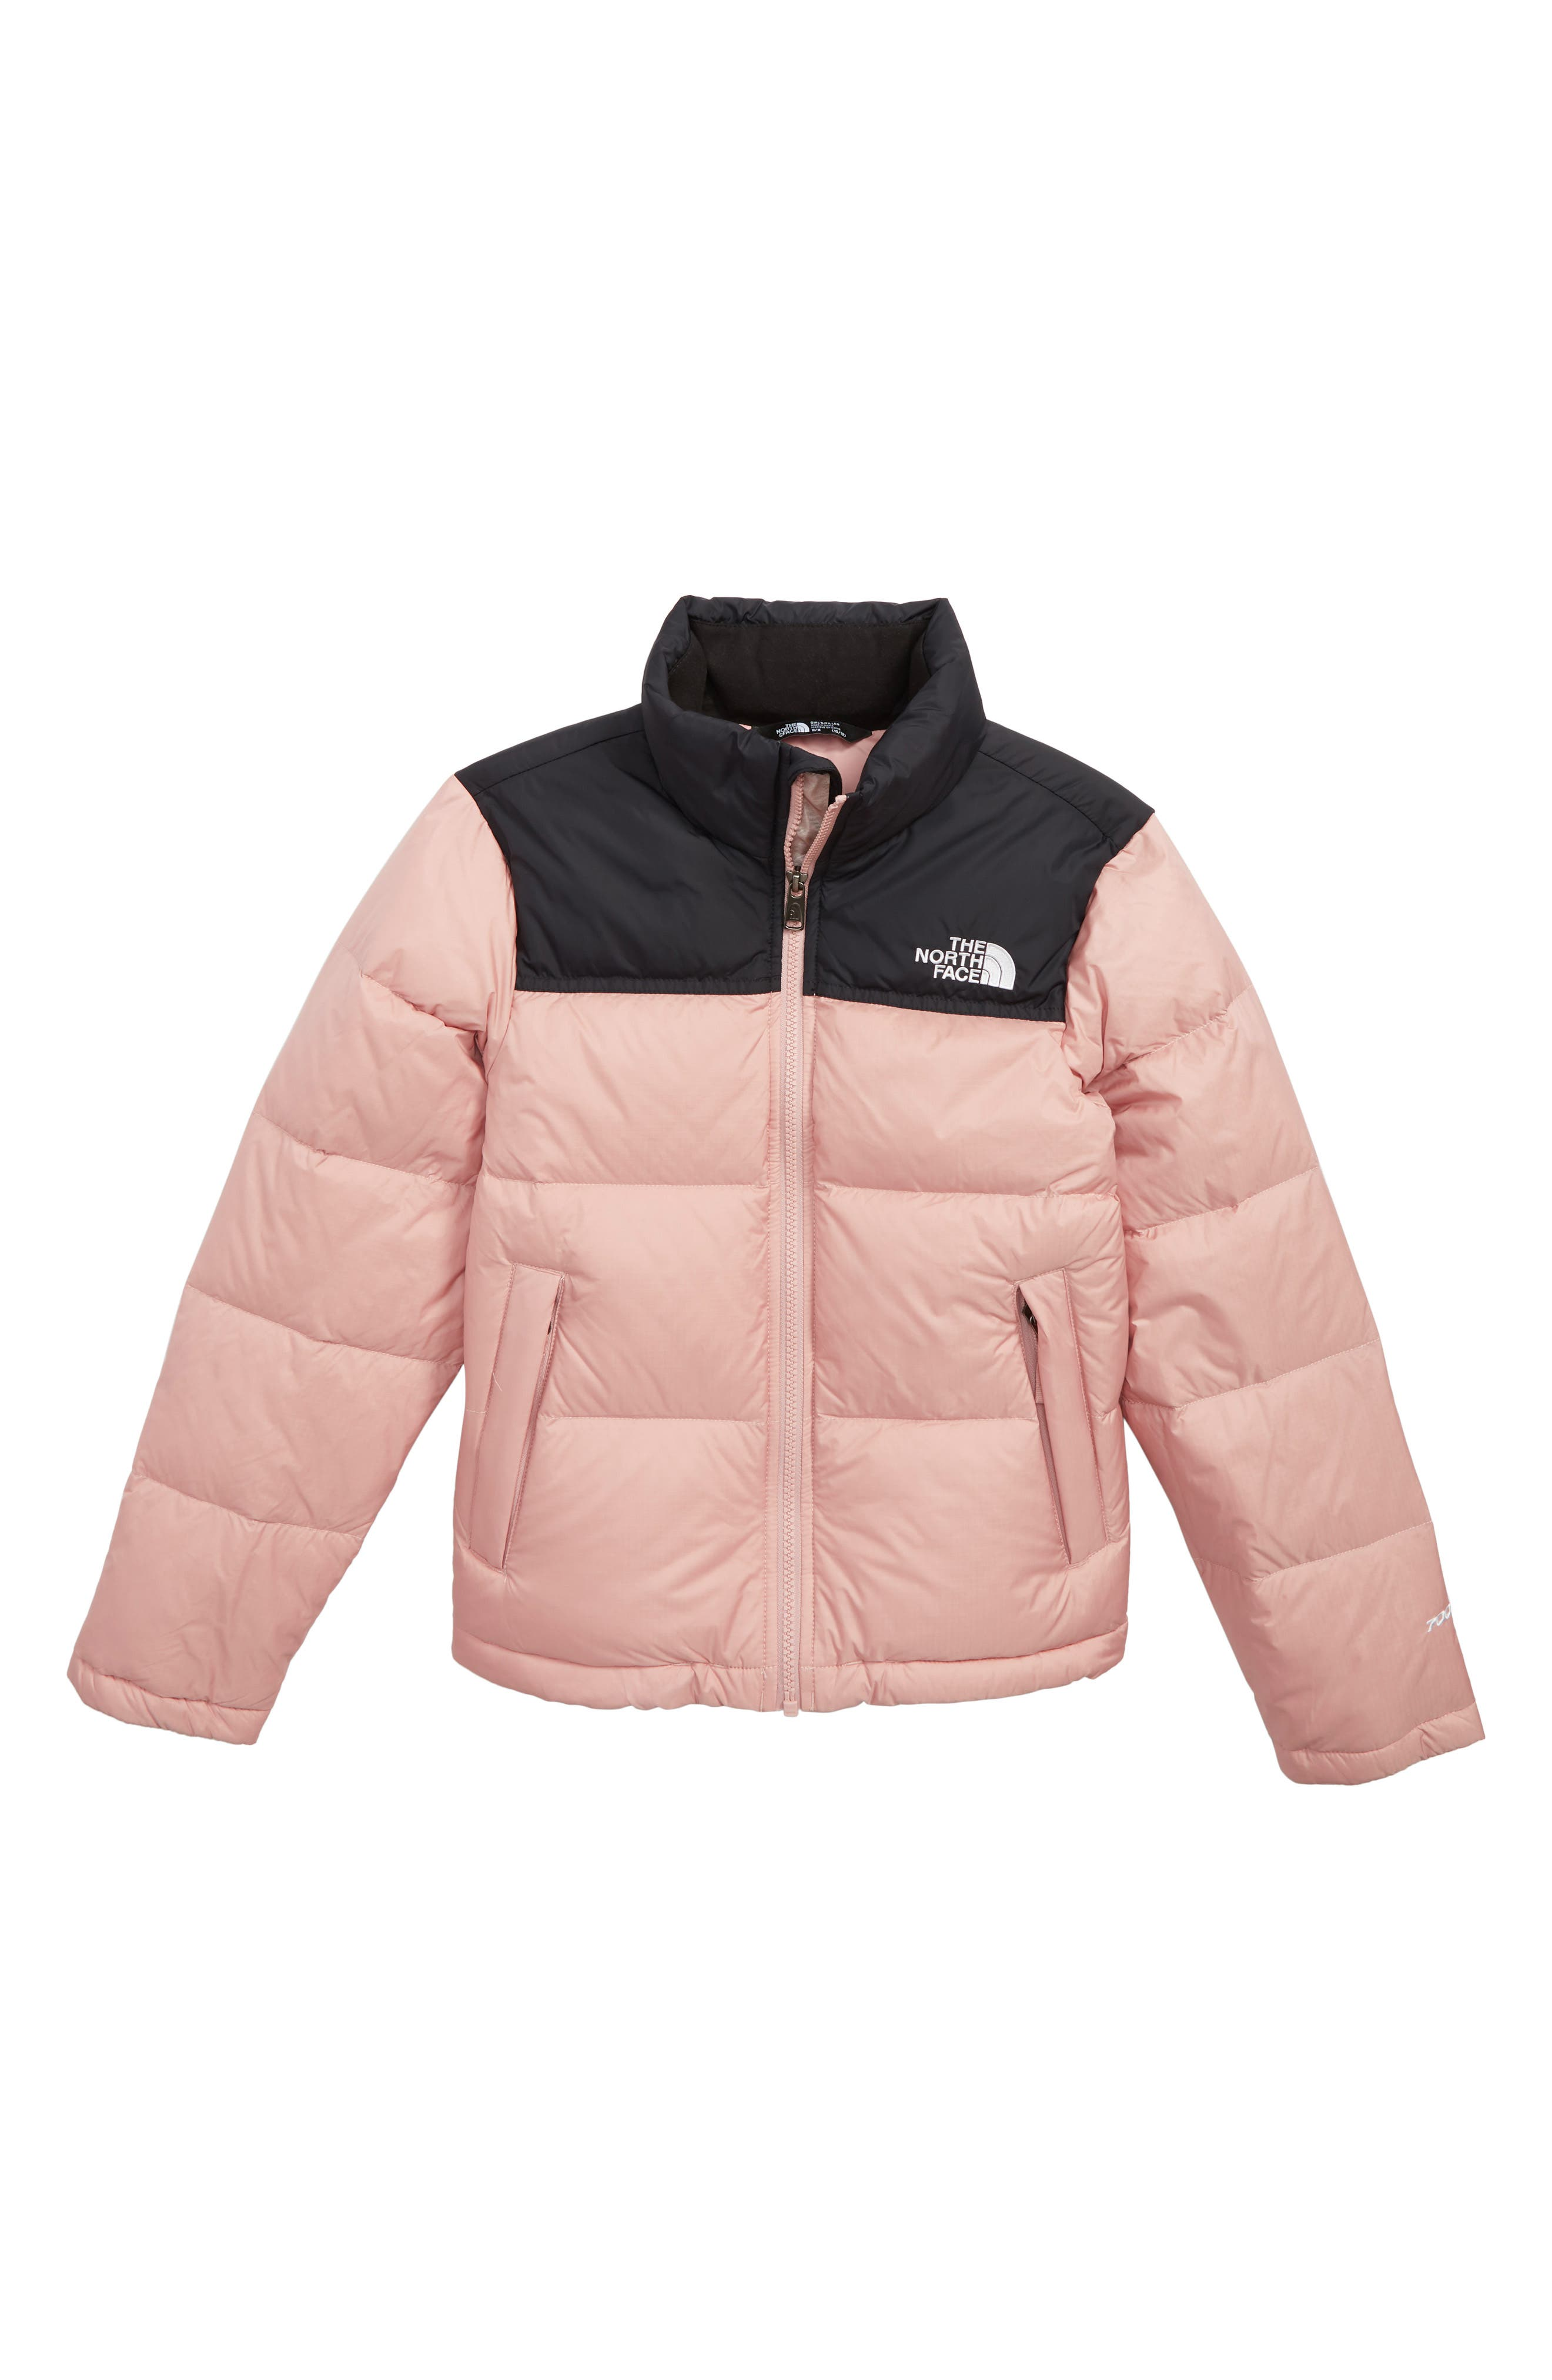 THE NORTH FACE, Nuptse 700 Fill Power Down Puffer Jacket, Main thumbnail 1, color, MISTY ROSE